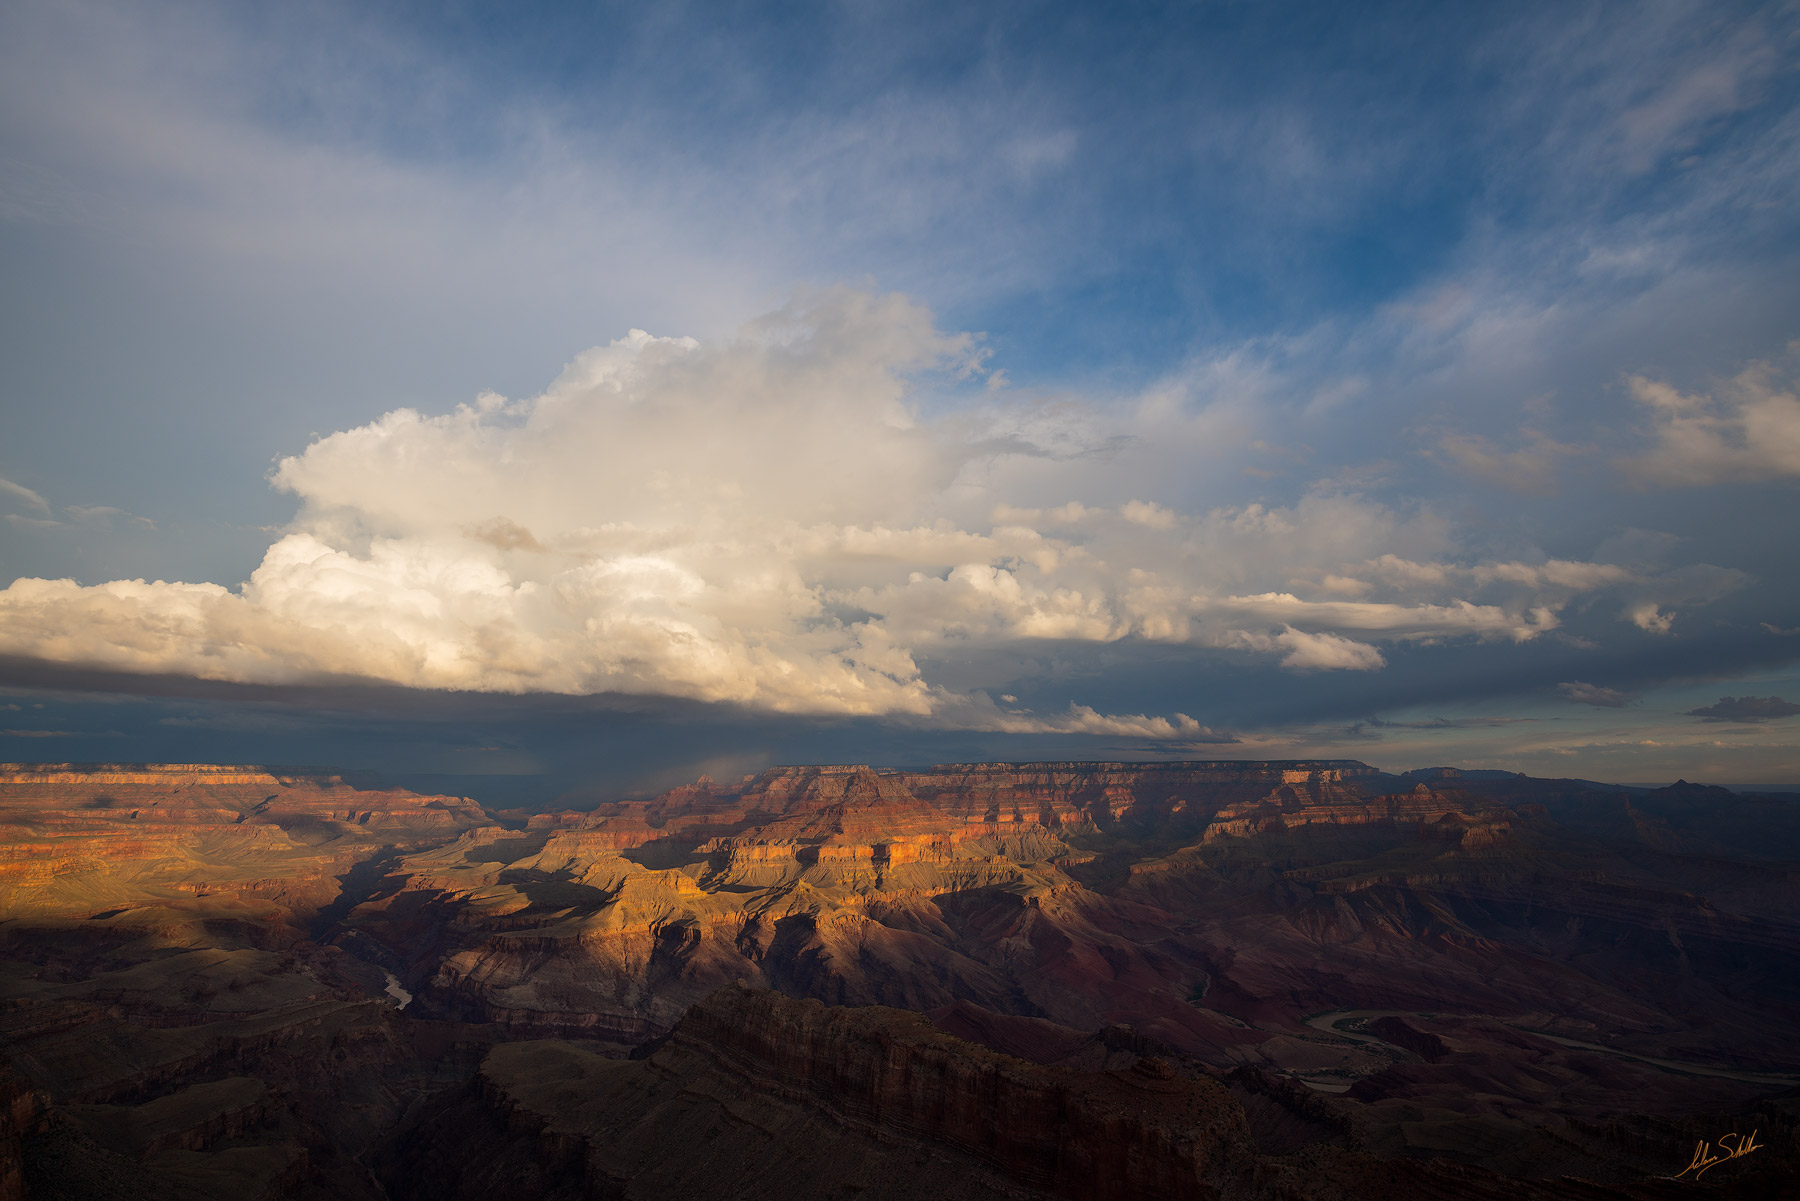 Colorado River, Grand Canyon, Lipan Point, Monsoon, National Park, South Rim, Storms, Thunder, photo